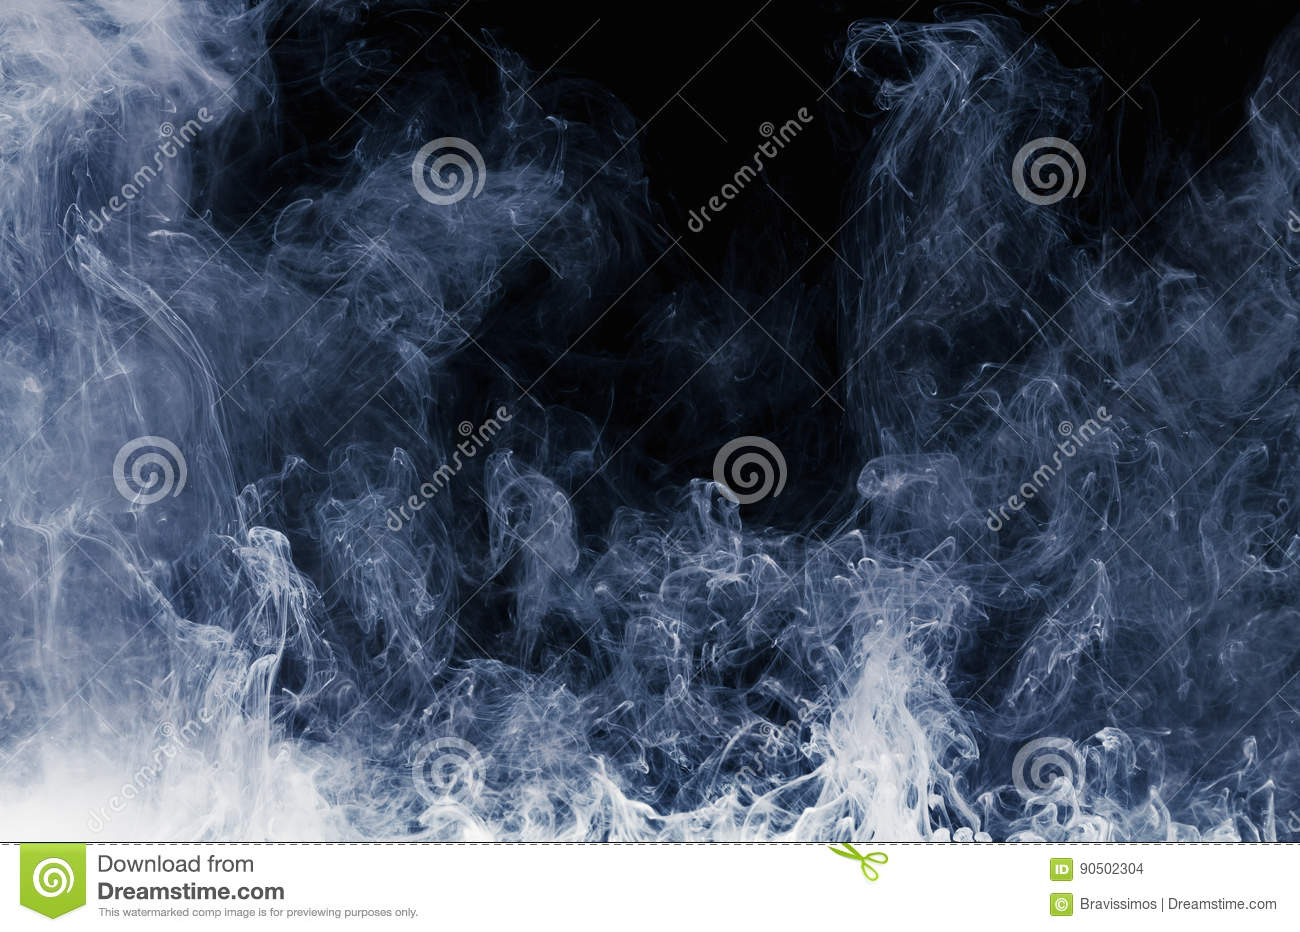 Abstract pattern of white smoke on a black background. Waves of mist and clouds.